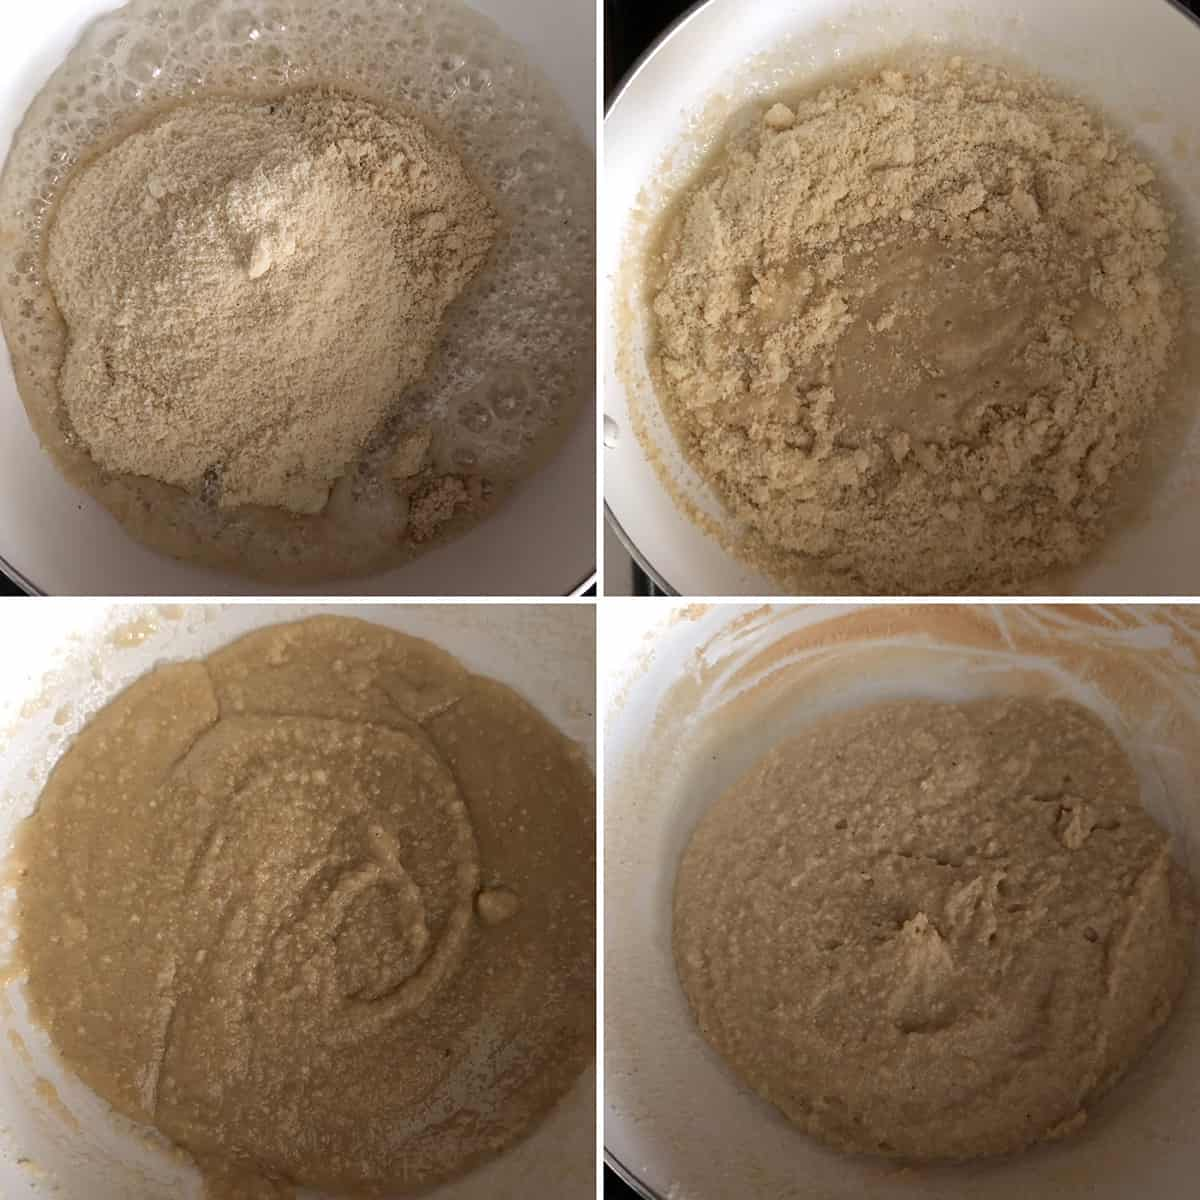 Step by step photos showing the making of mixed nut burfi